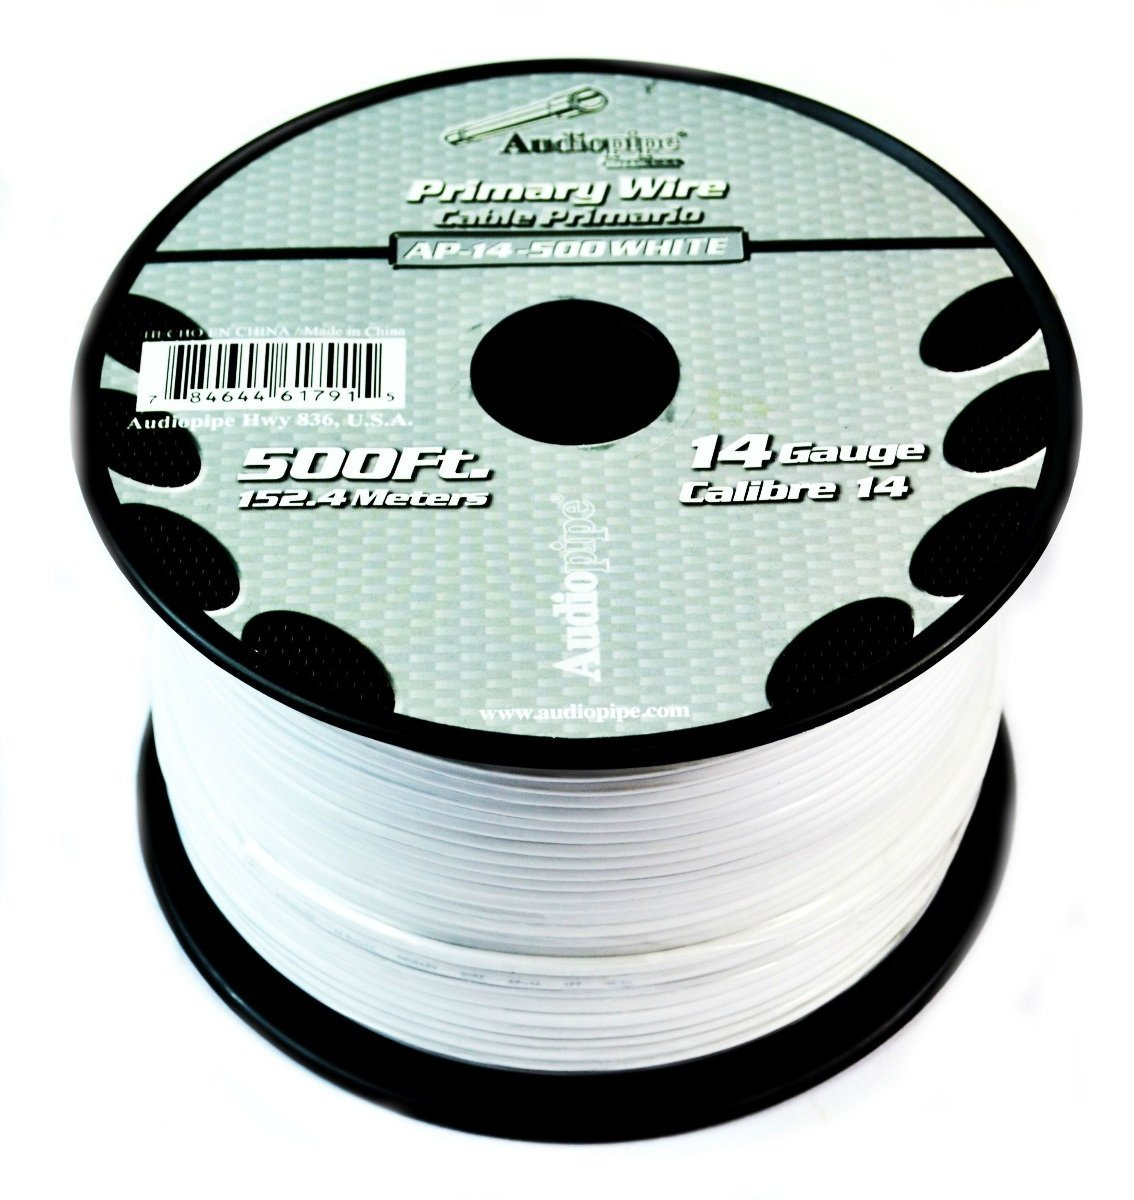 Audiopipe White 500' Feet 14 Gauge AWG Car Audio Primary Power Cable Remote Wire by Audiopipe